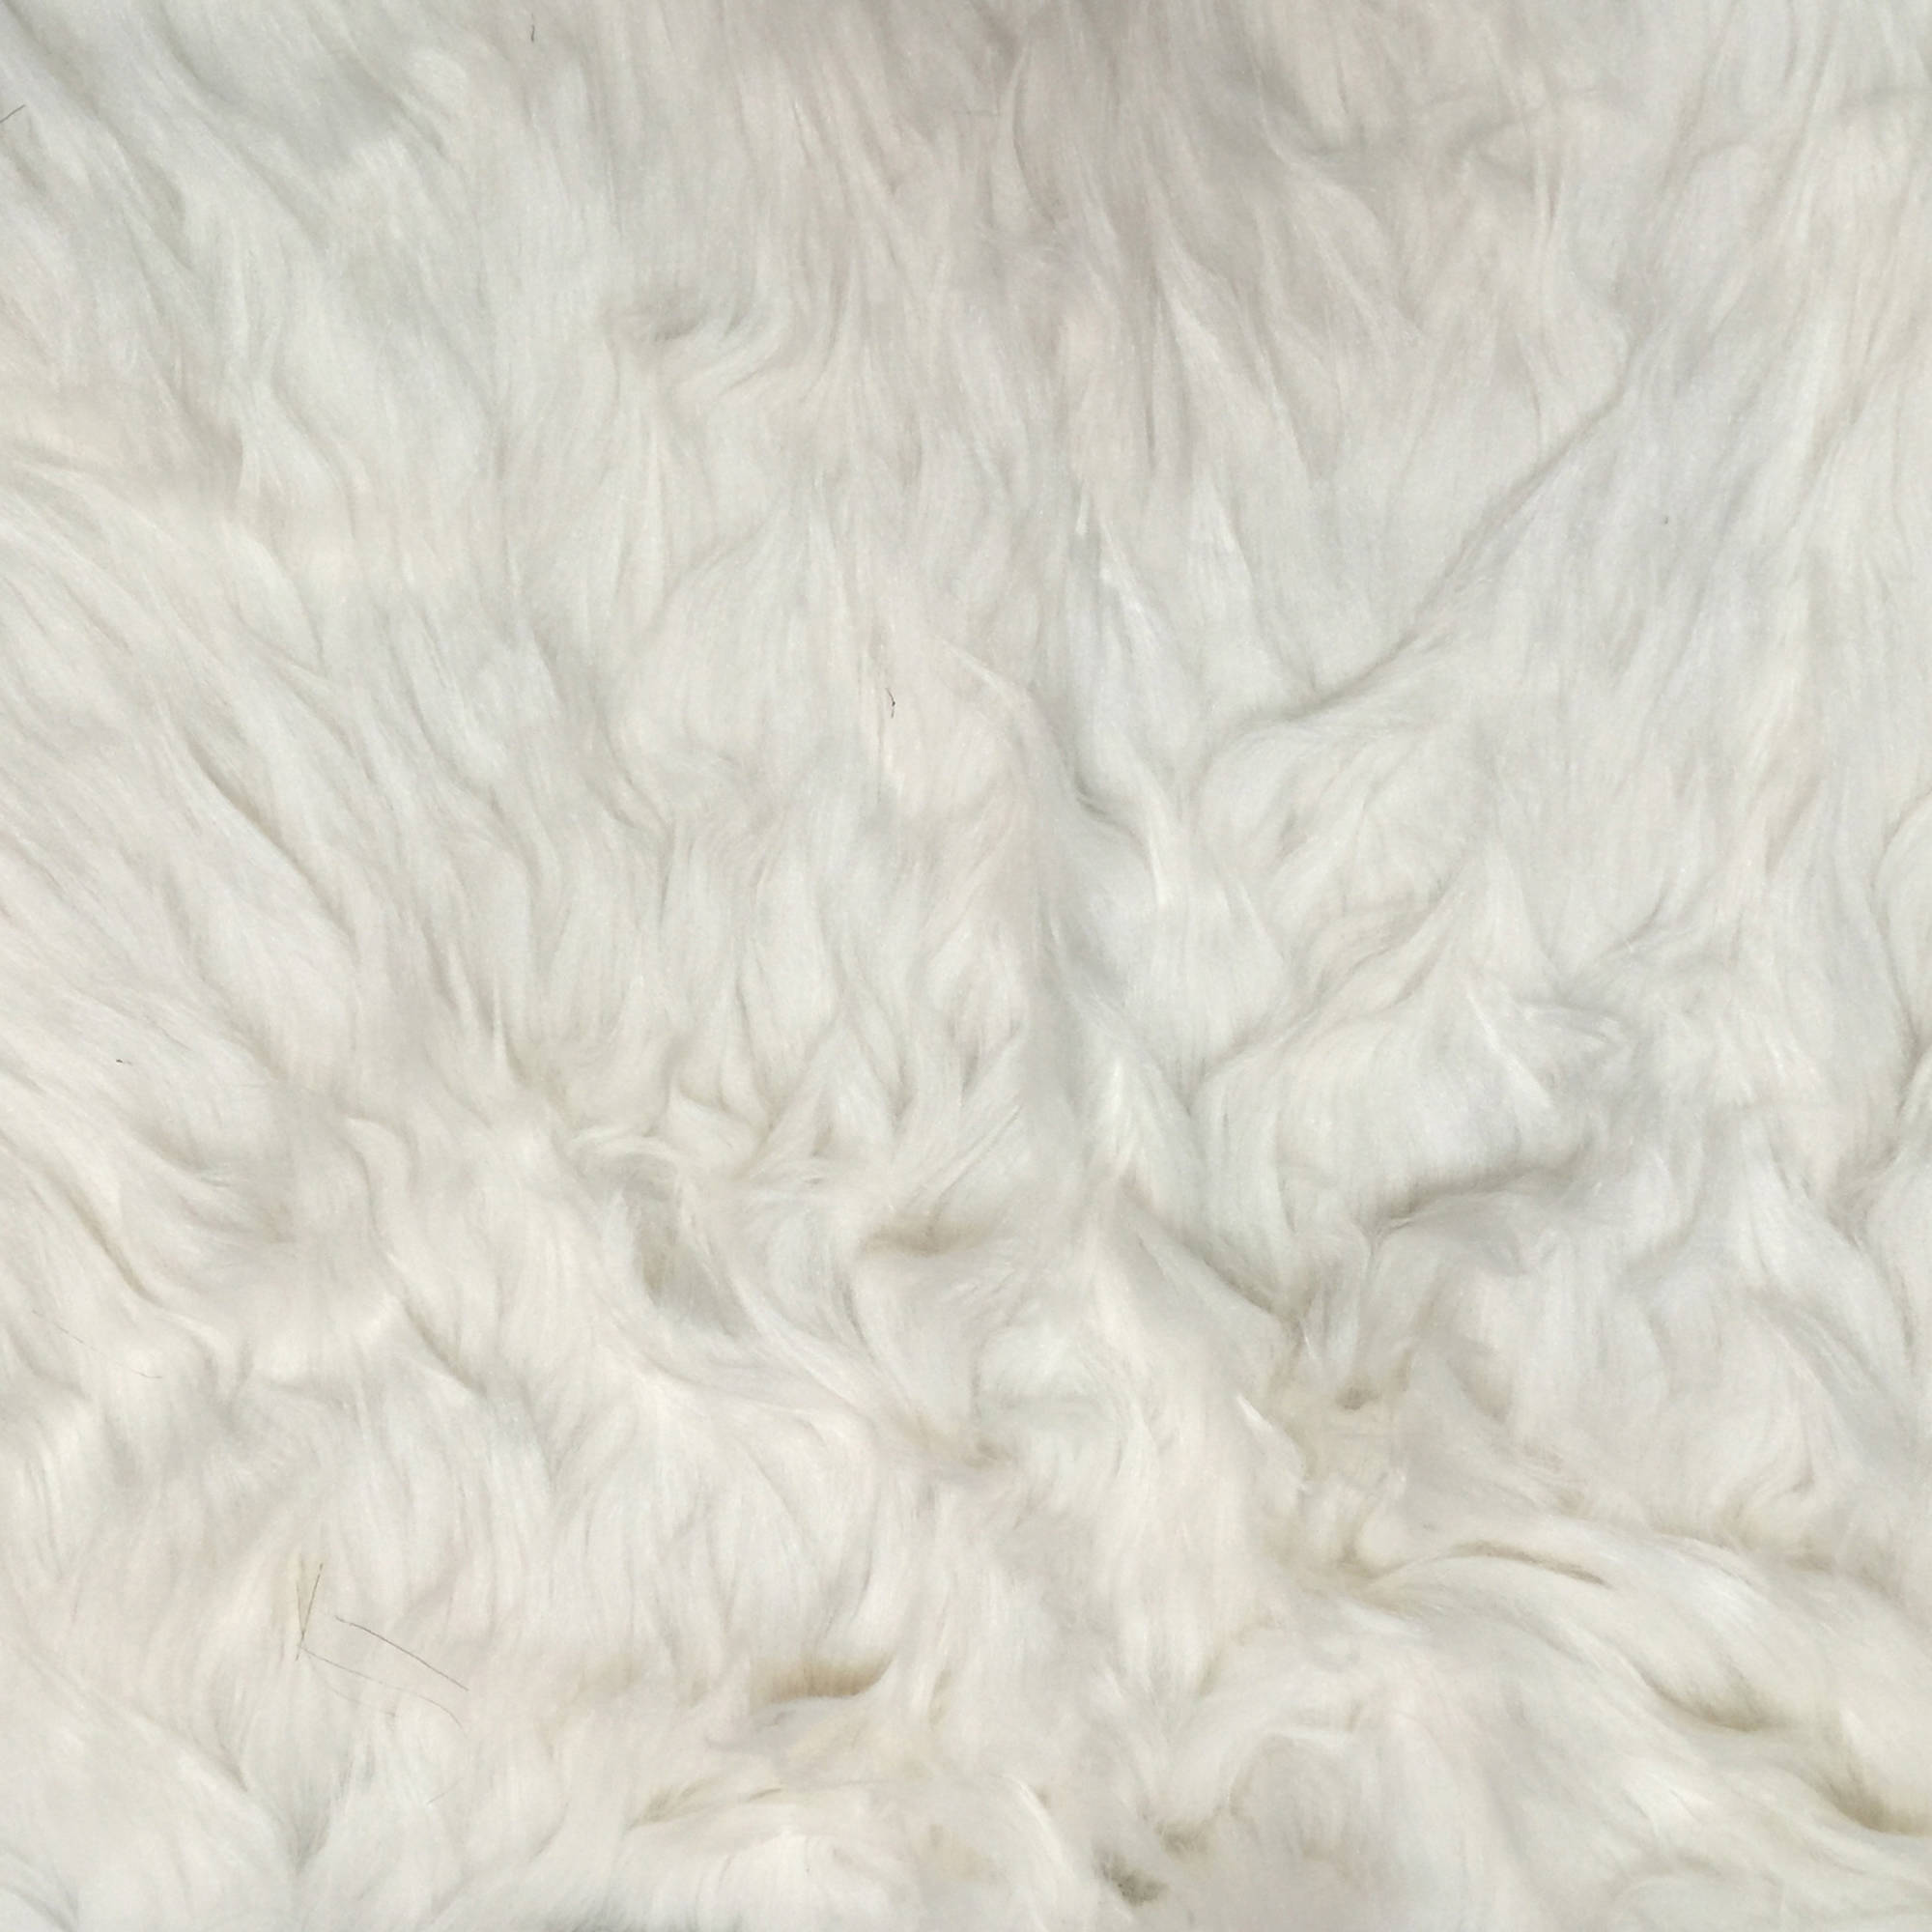 SHASON TEXTILE LUXURY FAUX FUR POLAR BEAR - LONG PILE, IVORY